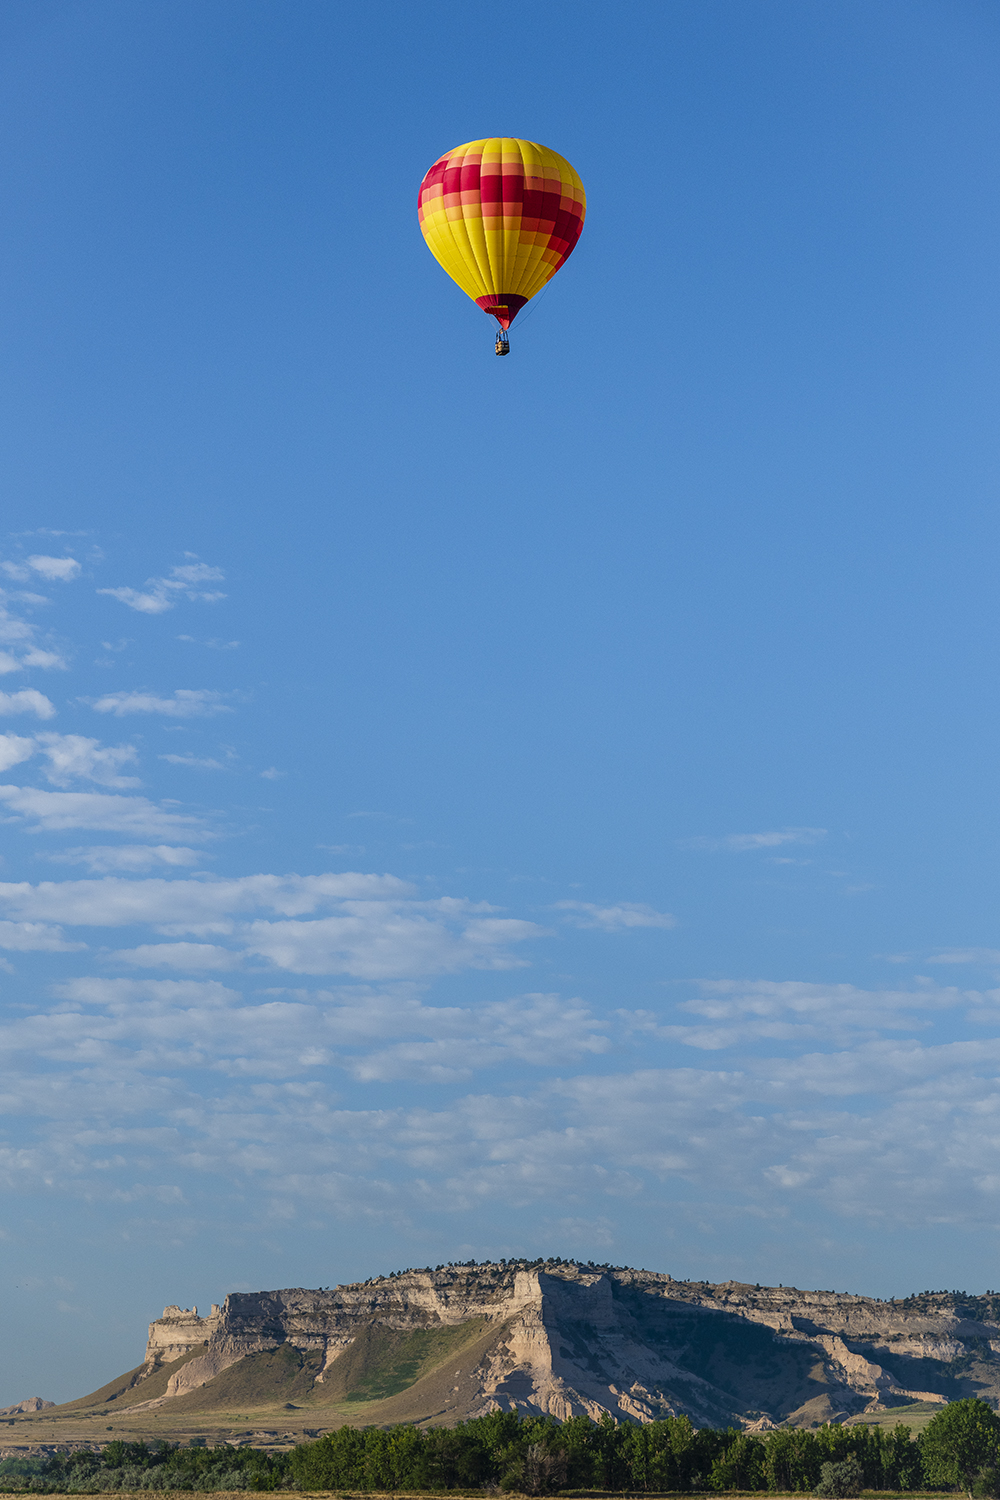 Kelli Cook floats high above the Scotts Bluff National Monument during the Old West Balloon Fest in August of 2020.  Photo: Hawk Buckman